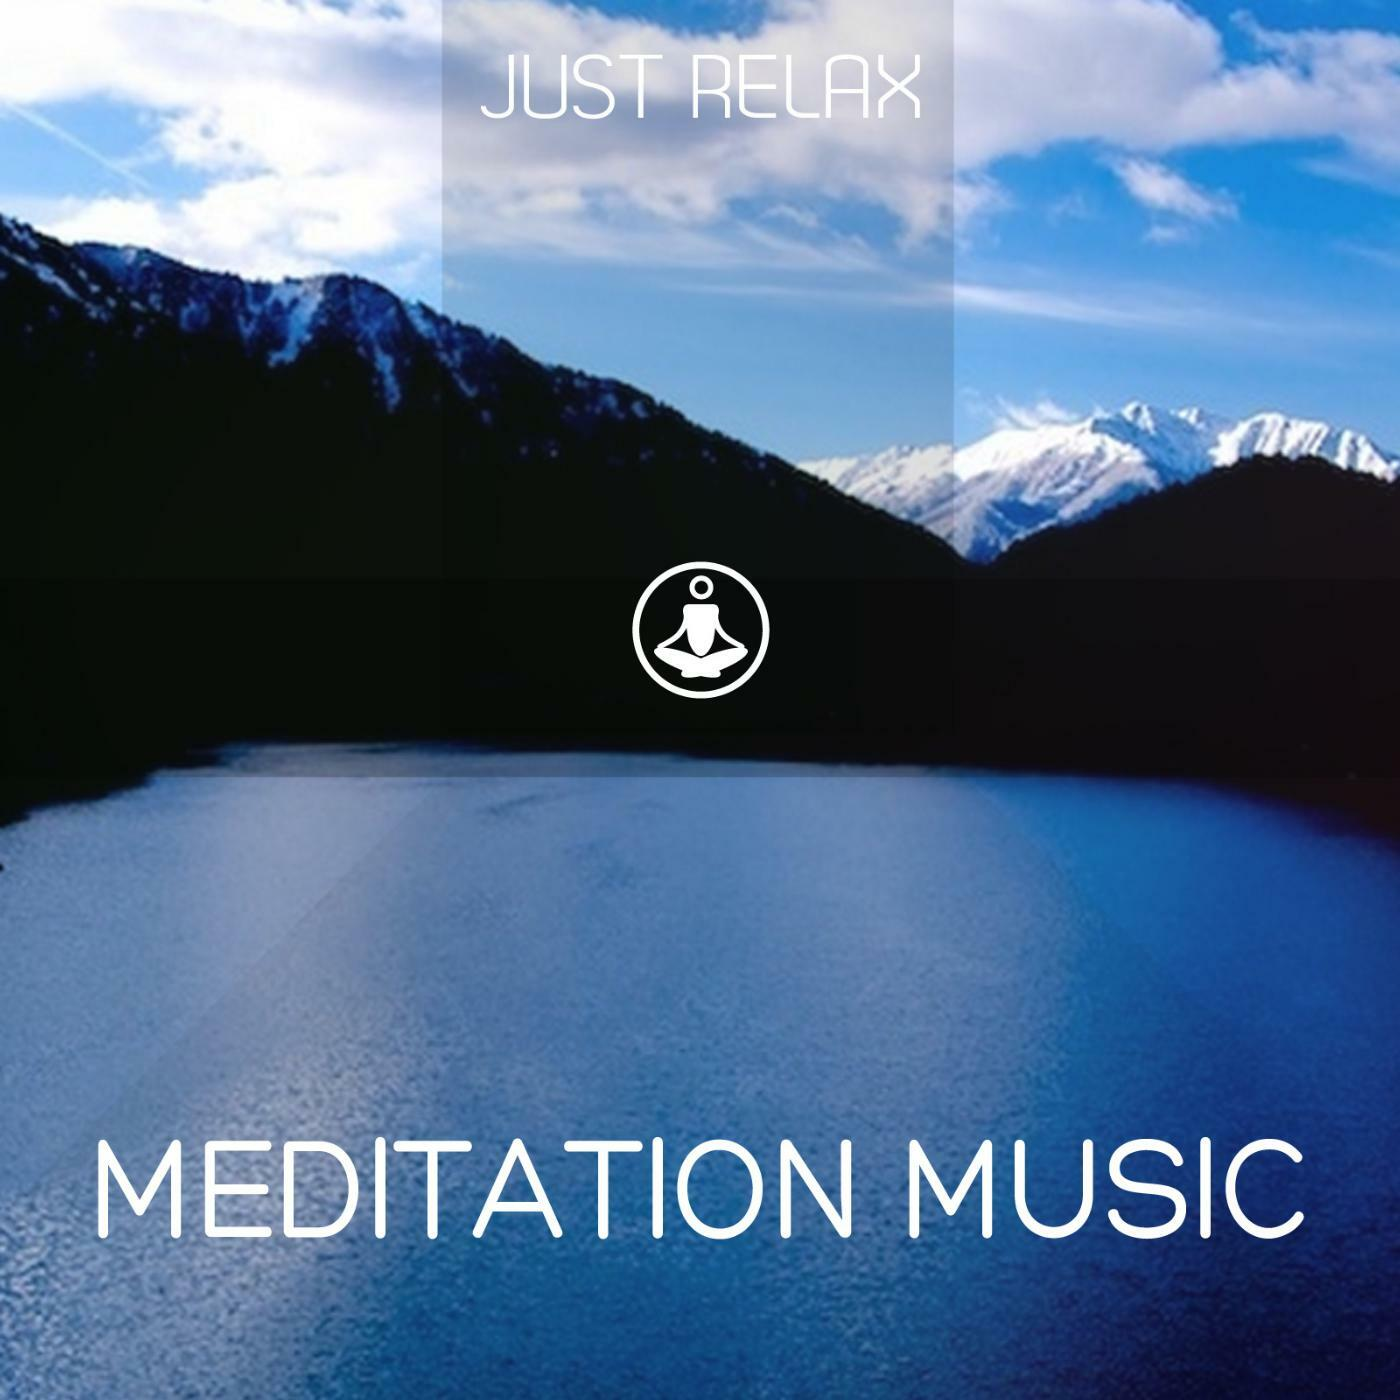 Meditation Songs Download: Meditation Hit MP3 New Songs Online Free on blogger.com